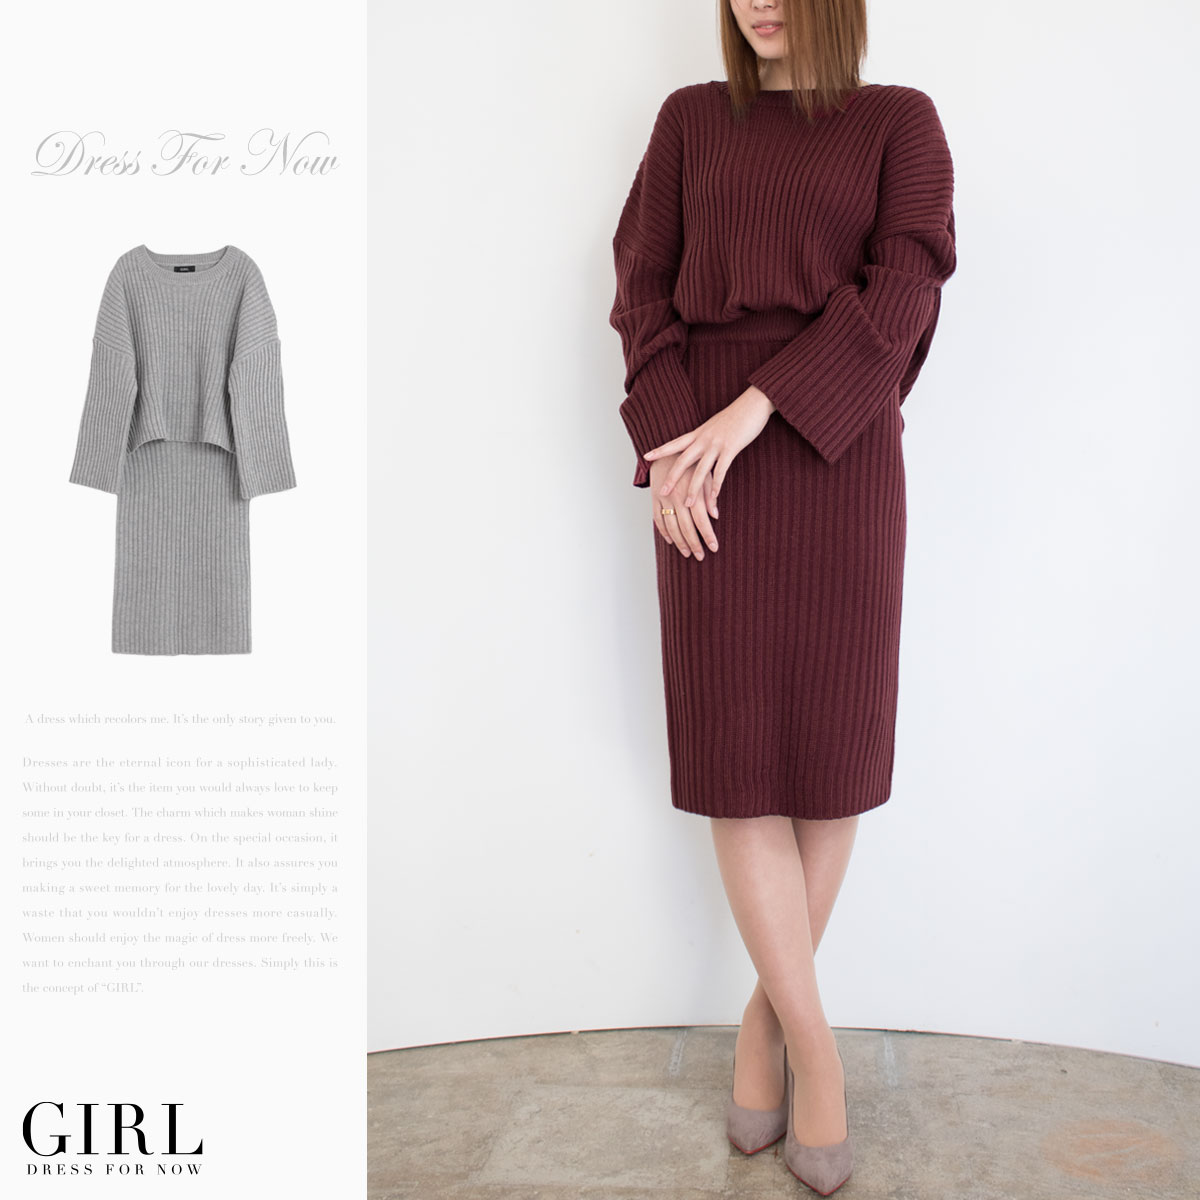 Dress shop GIRL: Tight skirt medium rib knit white gray black ...